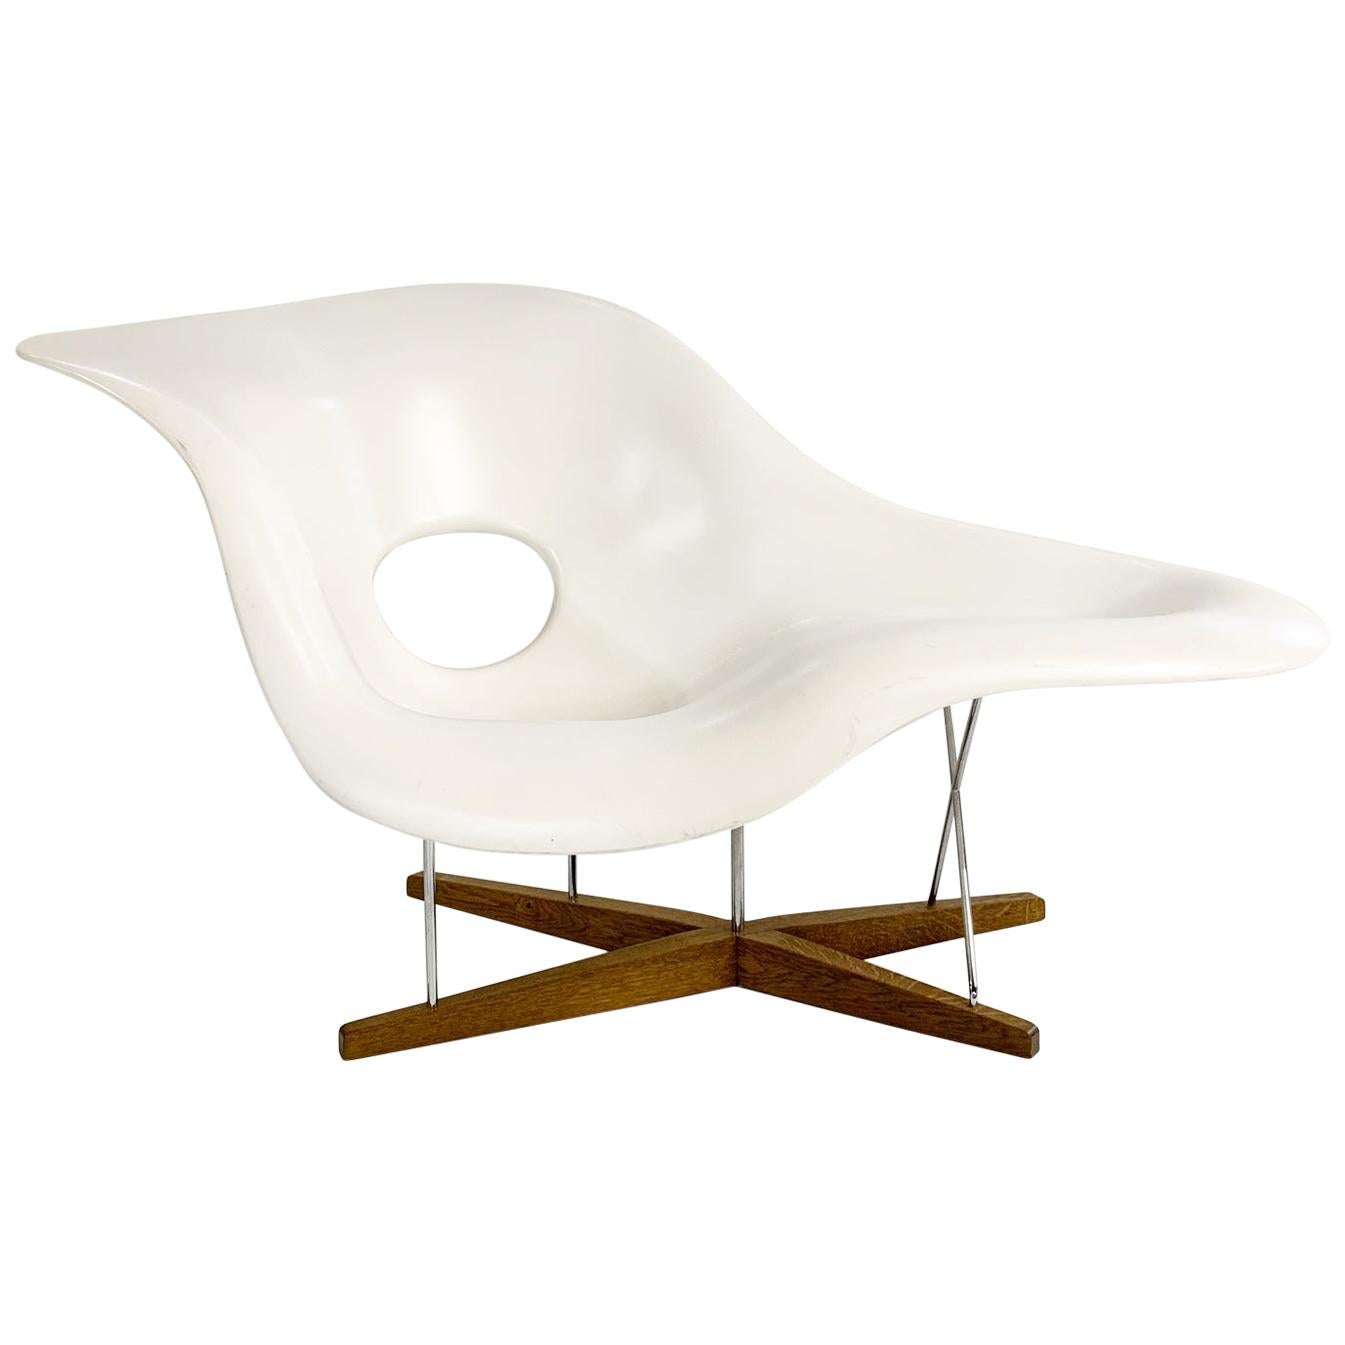 Awesome Vitra La Chaise Chair By Charles Ray Eames Pabps2019 Chair Design Images Pabps2019Com